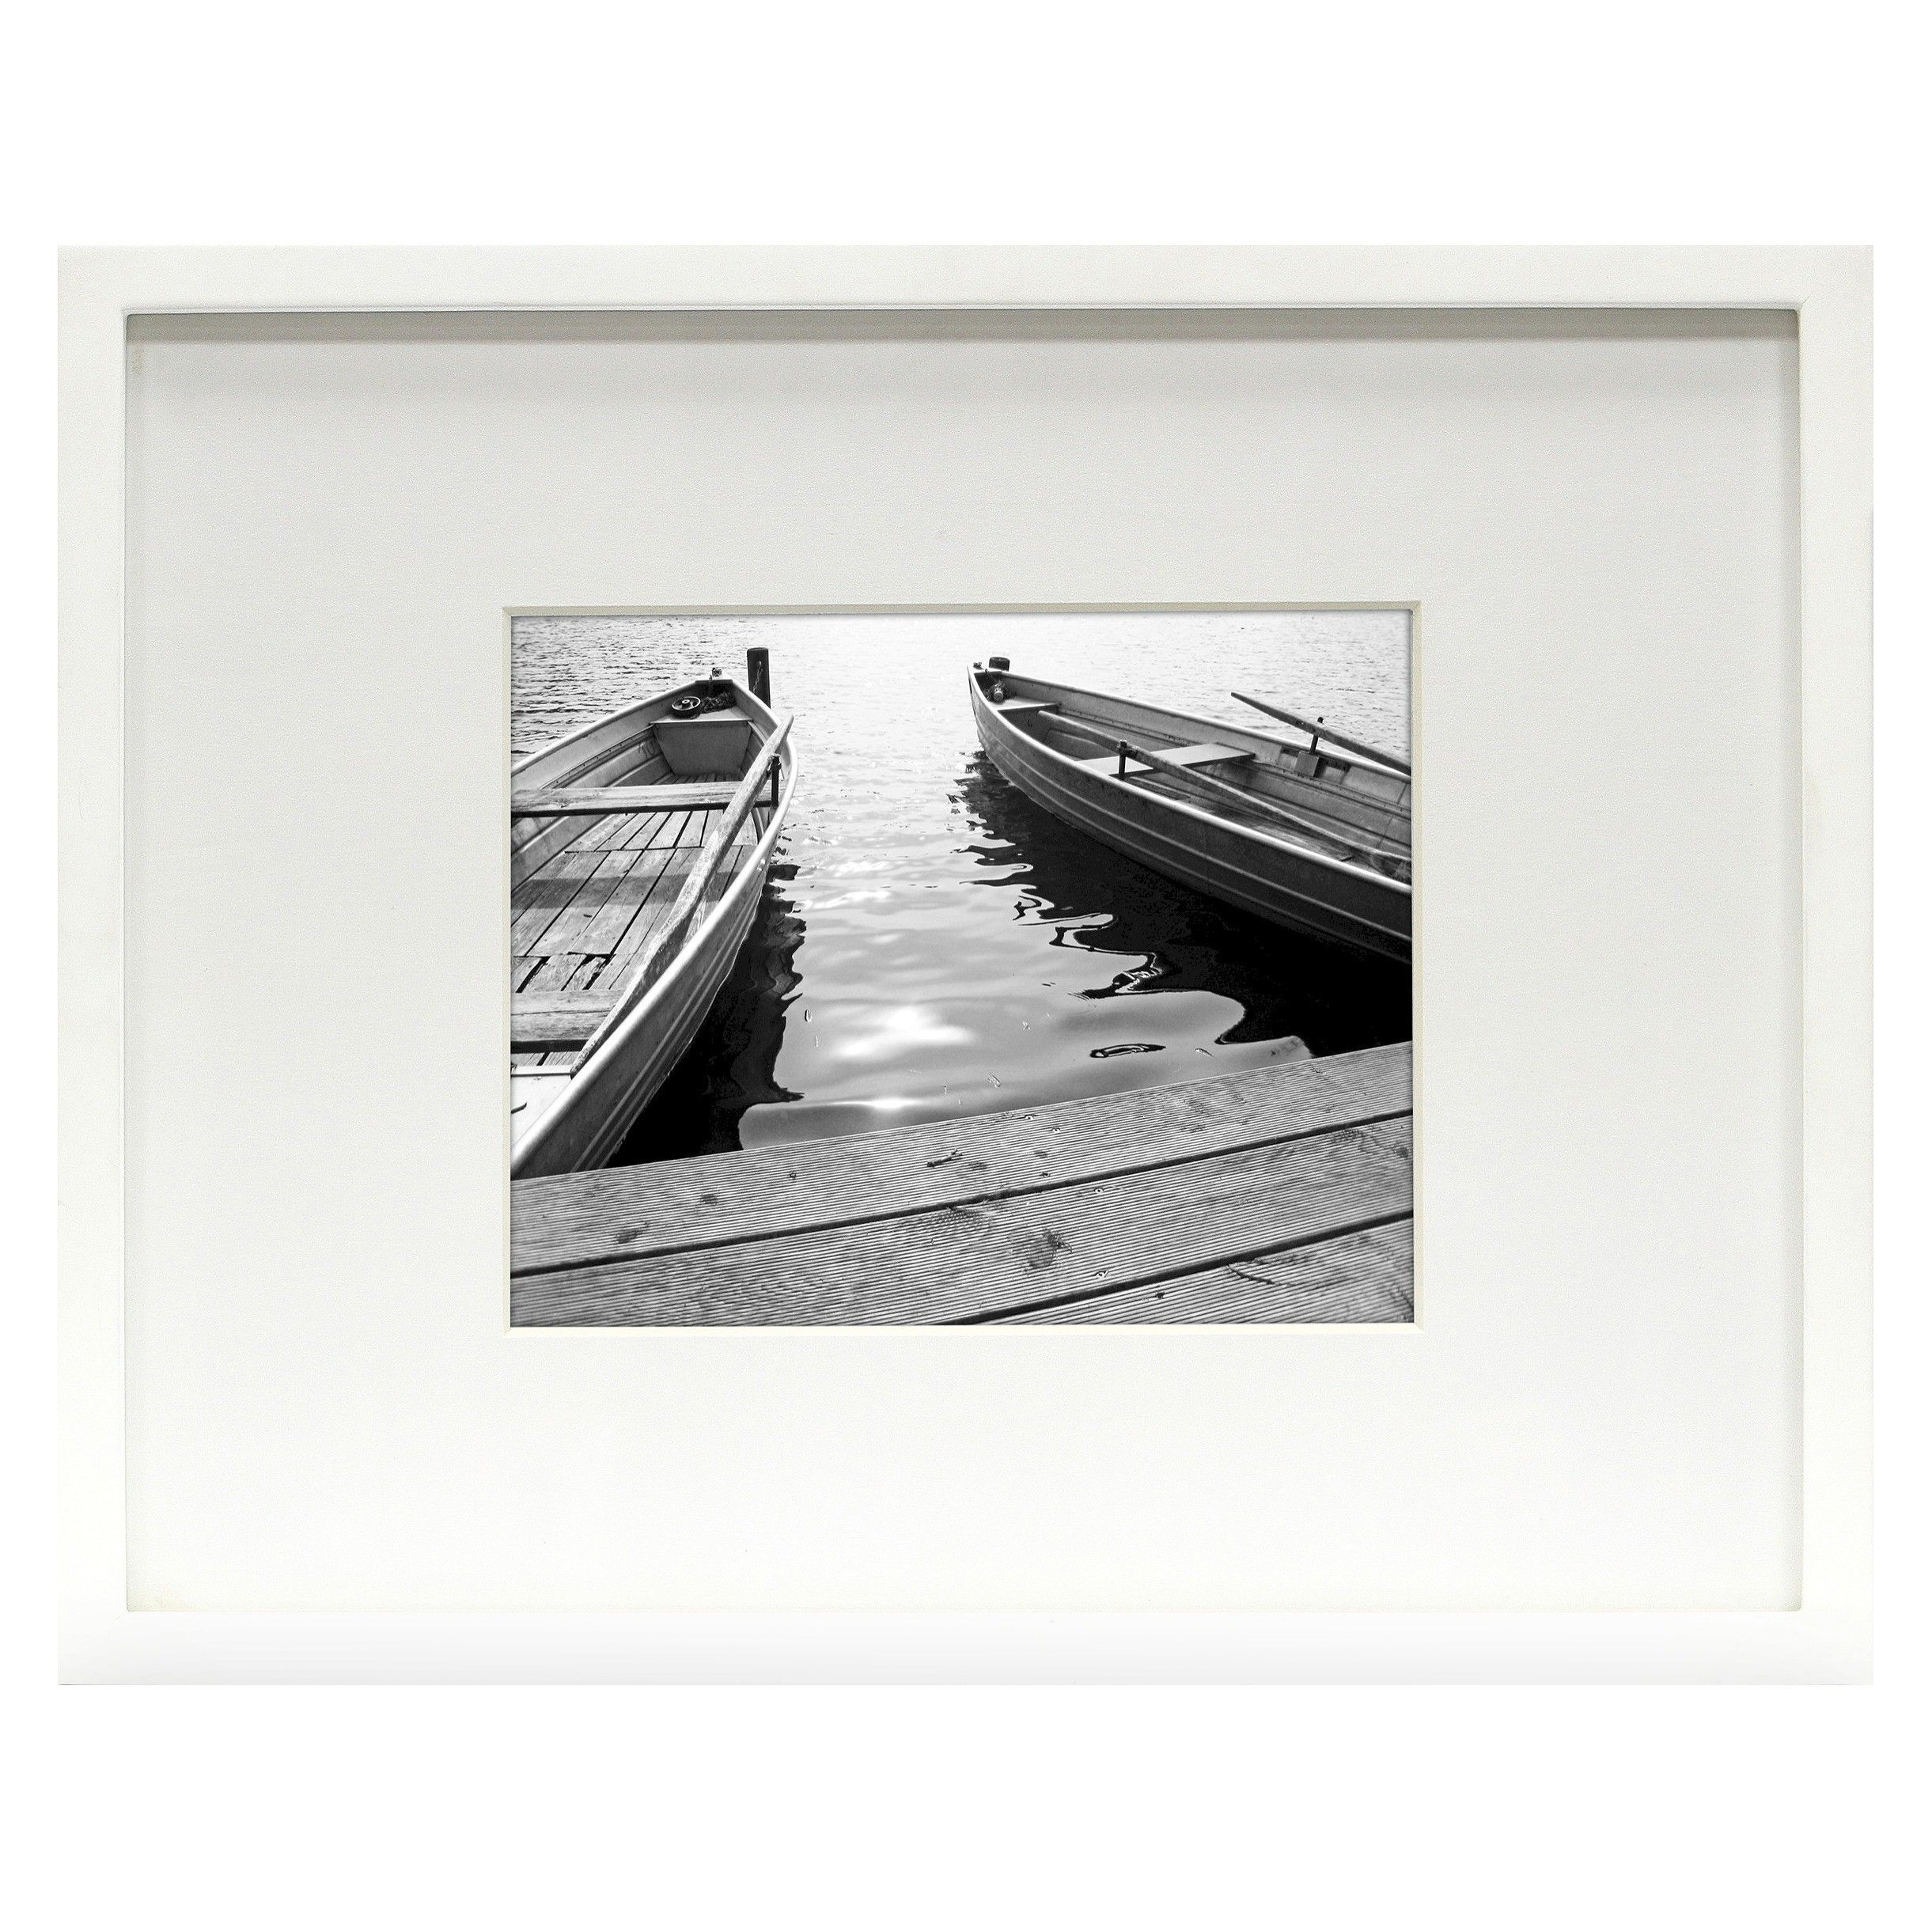 Room Essentials™ Wood Frame - 8x10 - White - Target $16.99 | Art ...